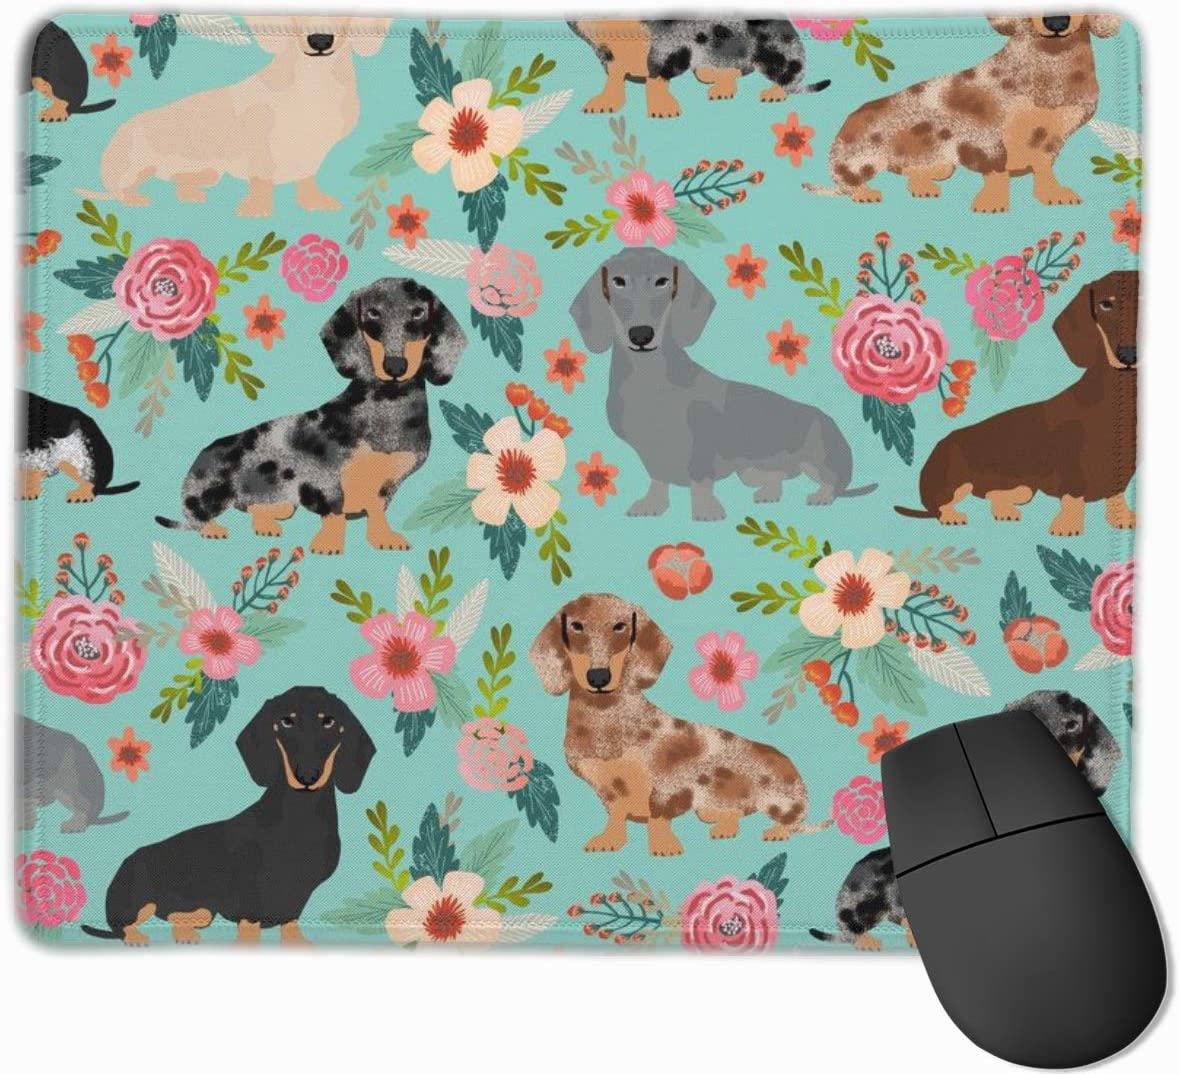 Mouse Pad with Design Dachshunds Dog with Flower Print for Computer Office Gaming